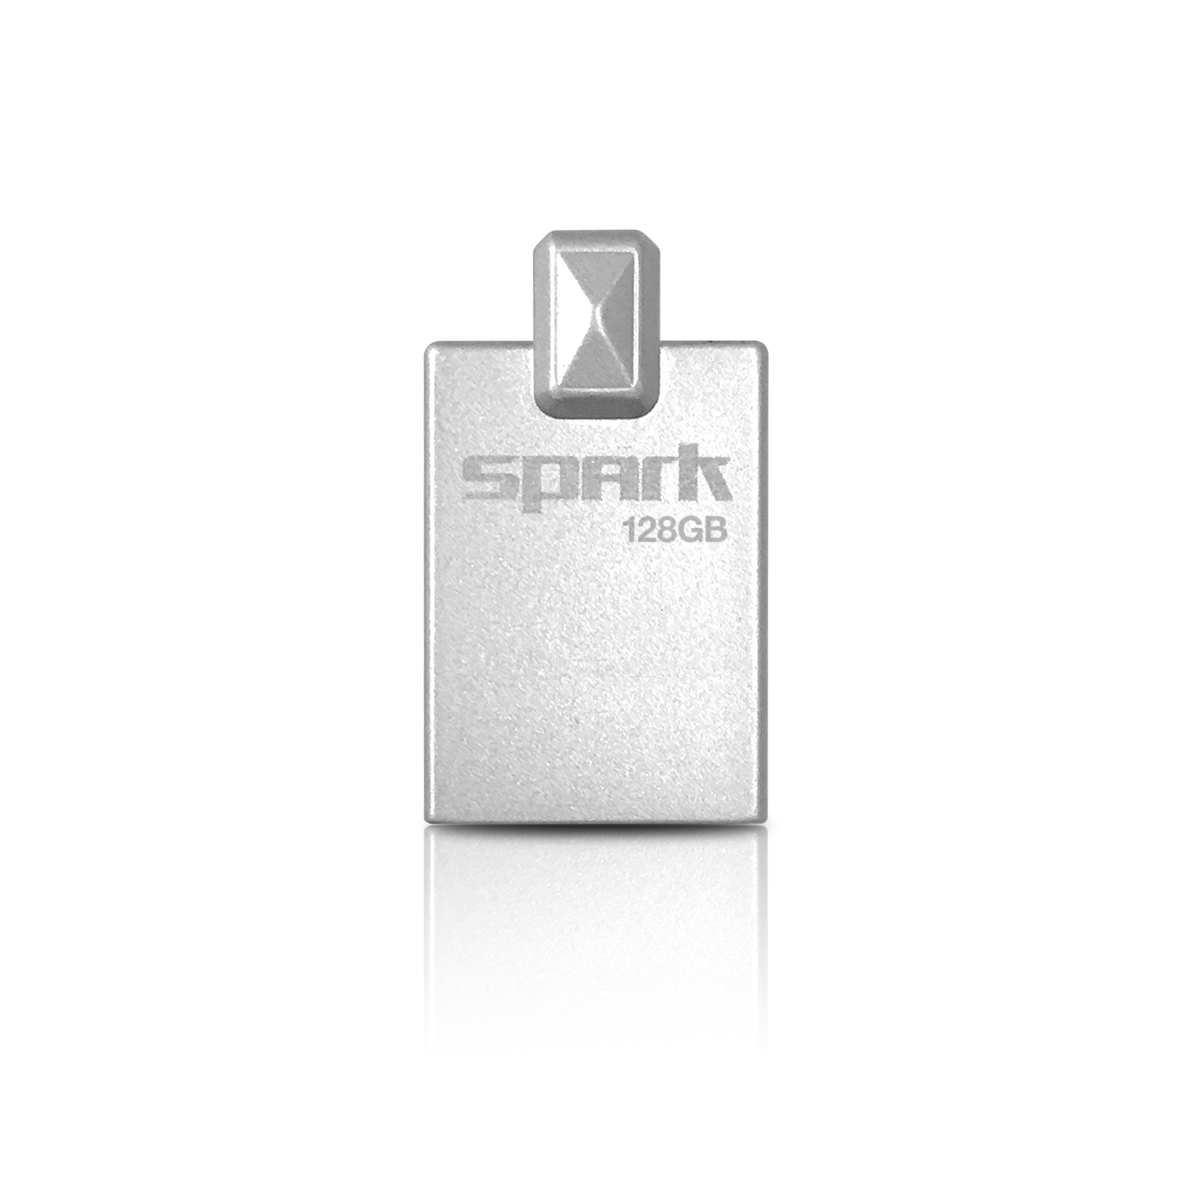 Flash Drive Patriot Spark USB 3.1 Gen.1 128GB